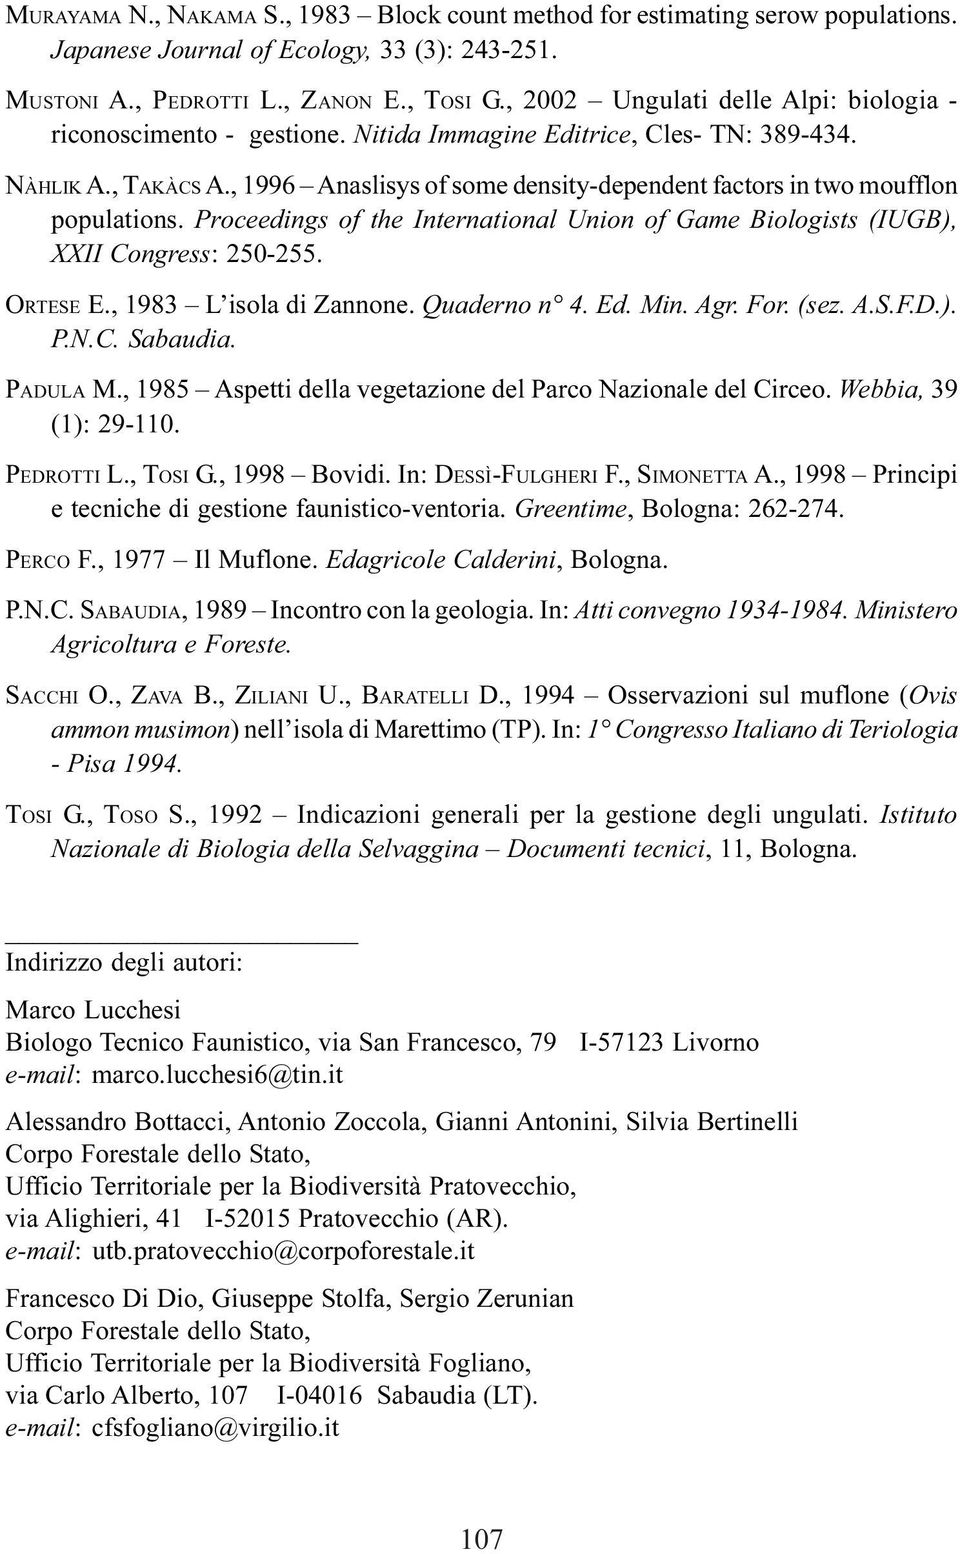 , 1996 Anaslisys of some density-dependent factors in two moufflon populations. Proceedings of the International Union of Game Biologists (IUGB), XXII Congress: 250-255. ORTESE E.